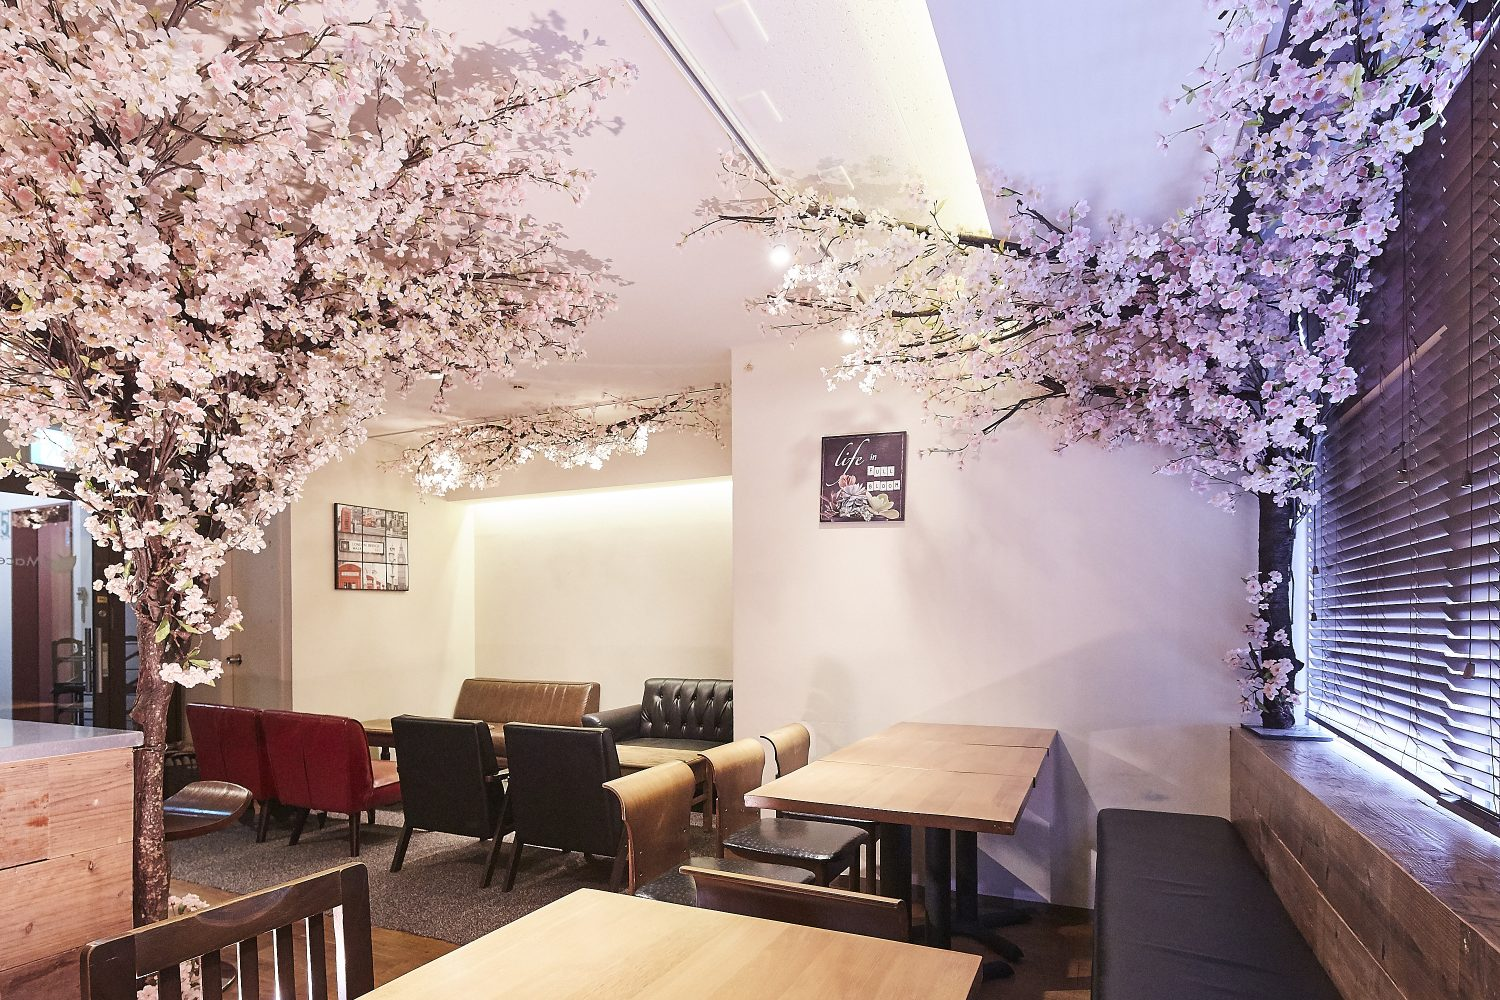 Mace 西新宿 | ★3/15~4/30 期間限定で桜の装飾★